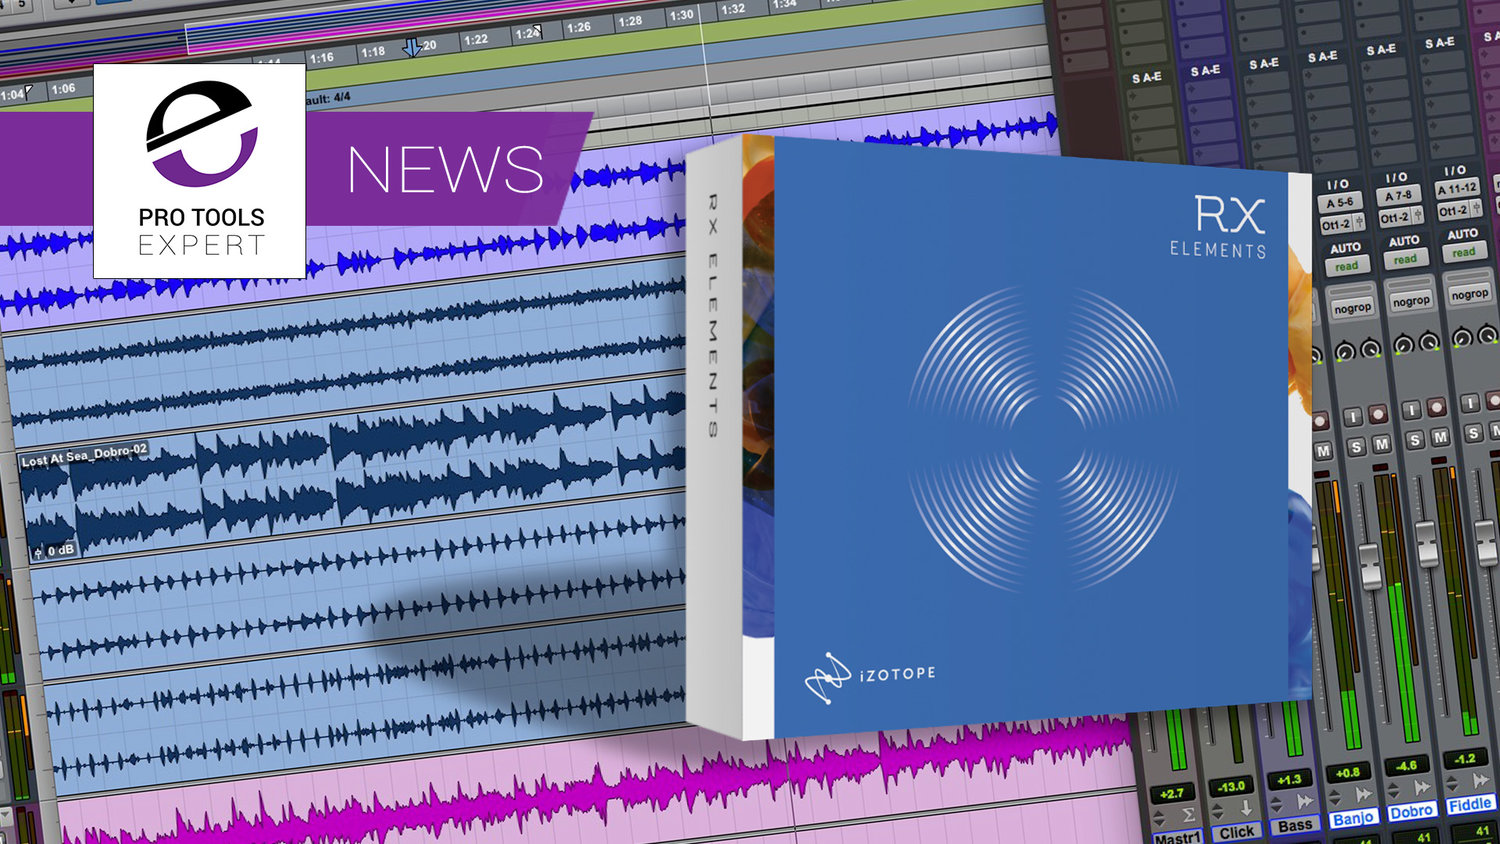 iZotope Offer RX Elements Worth $129 To Current Pro Tools